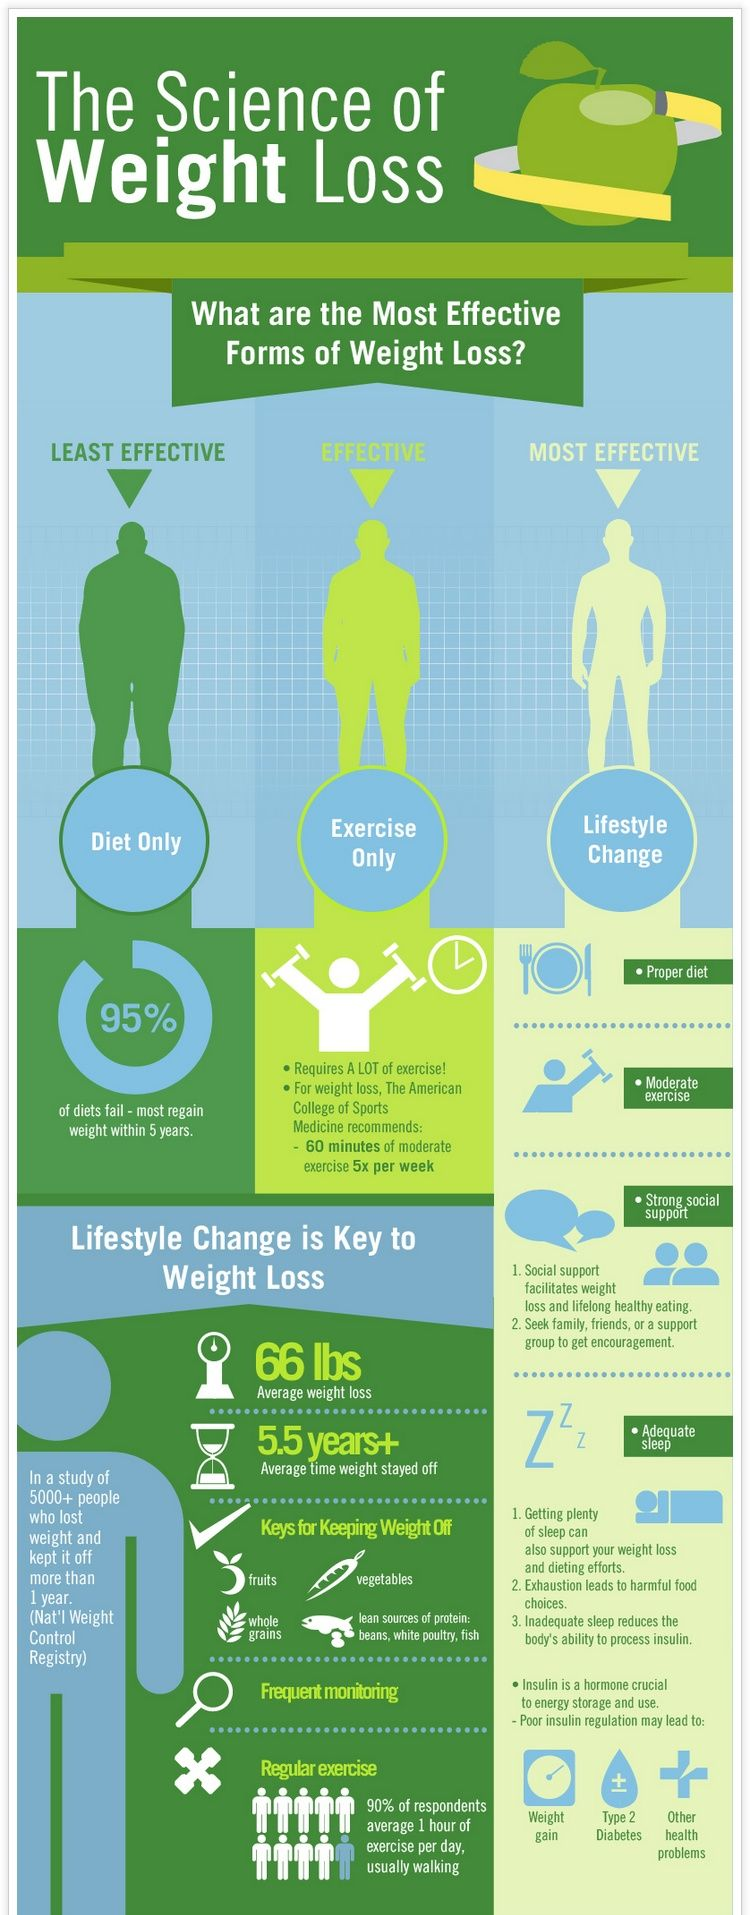 8) This pin explains the differences between weight loss approaches. Making the total lifestyle change is the best method. People of low socioeconomic status have trouble achieving this goal due to their limitations finically.This is best represented in the dietary changes that need to occur in order to promote weight loss. Many of these foods are expensive to purchase or time consuming to prepare. Therefore making losing more difficult for those of low socioeconomic status.